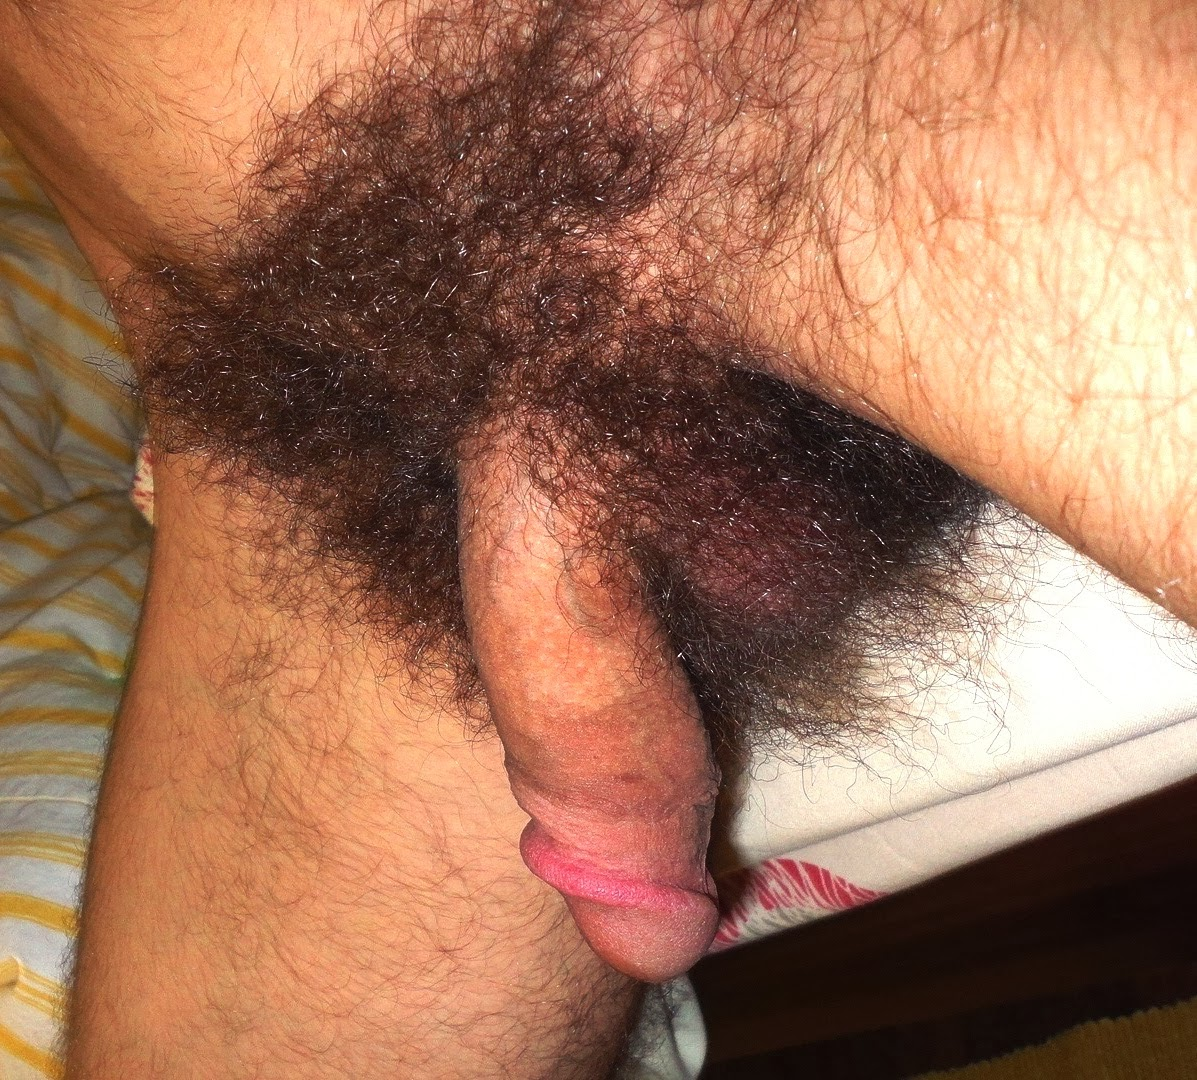 Madison handjob for a friend